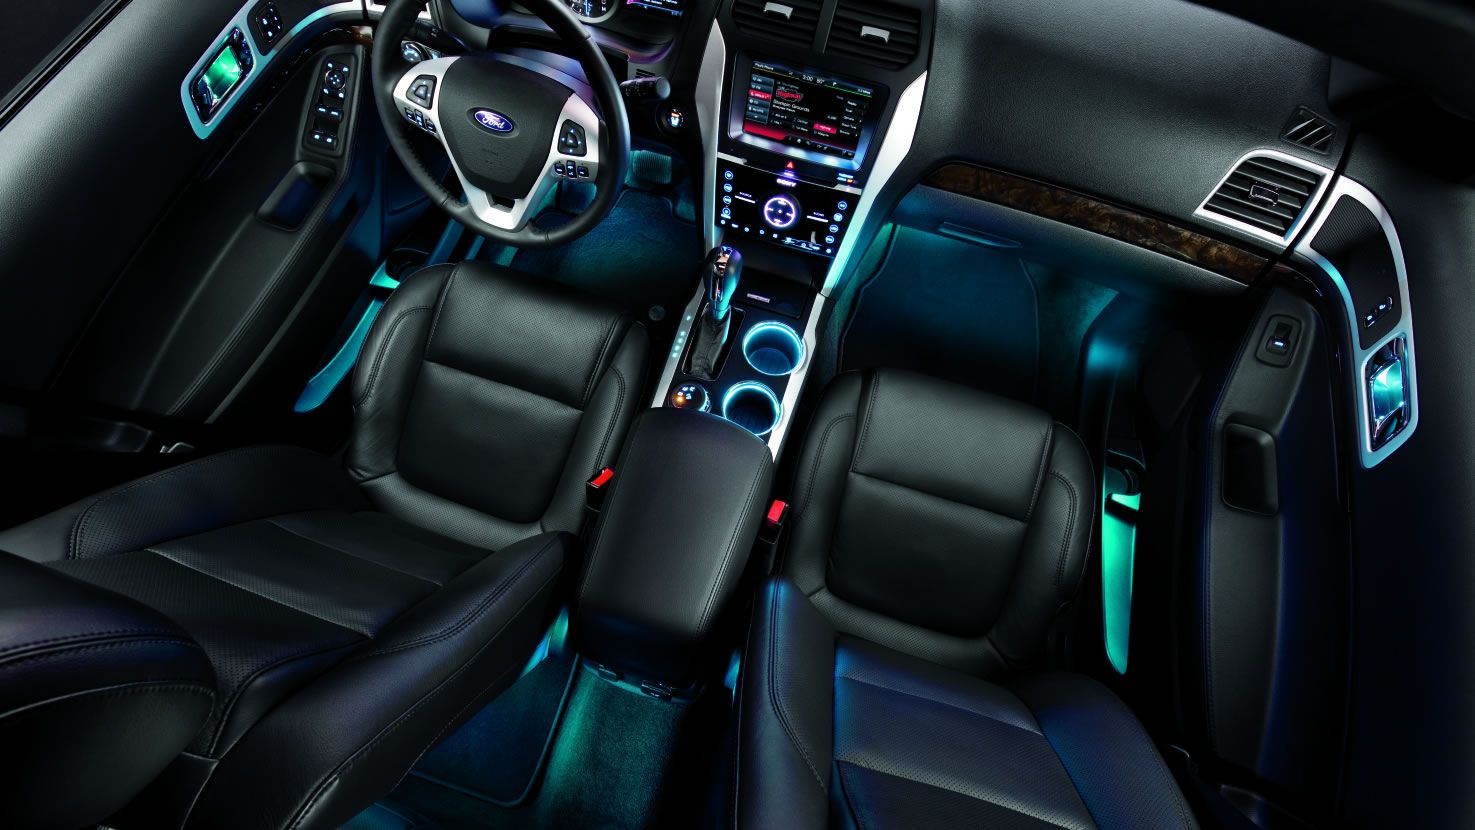 Export ford explorer 2015 interior details things to - Ford escape interior accessories ...